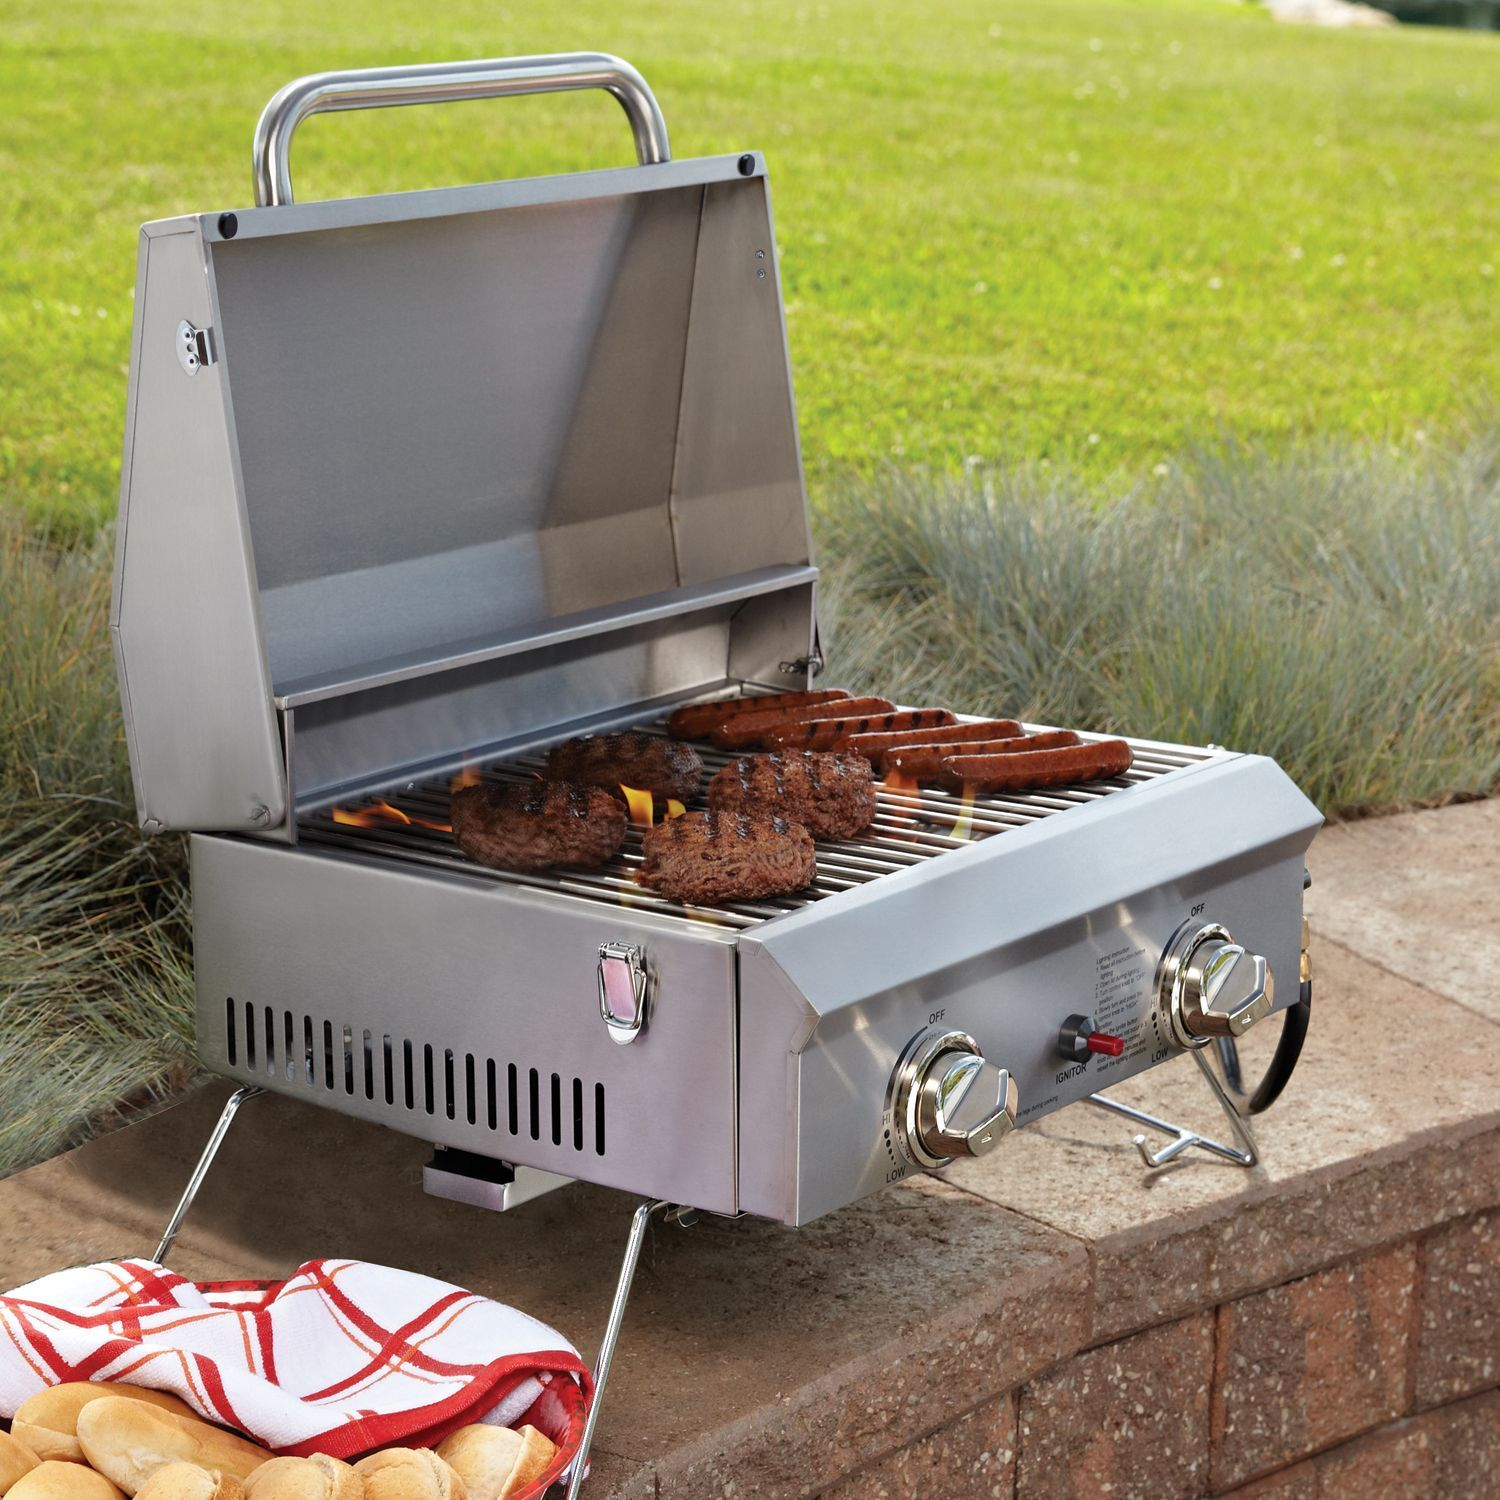 Captivating Memberu0027s Mark Portable Stainless Steel Gas Grill With Cover   Samu0027s Club